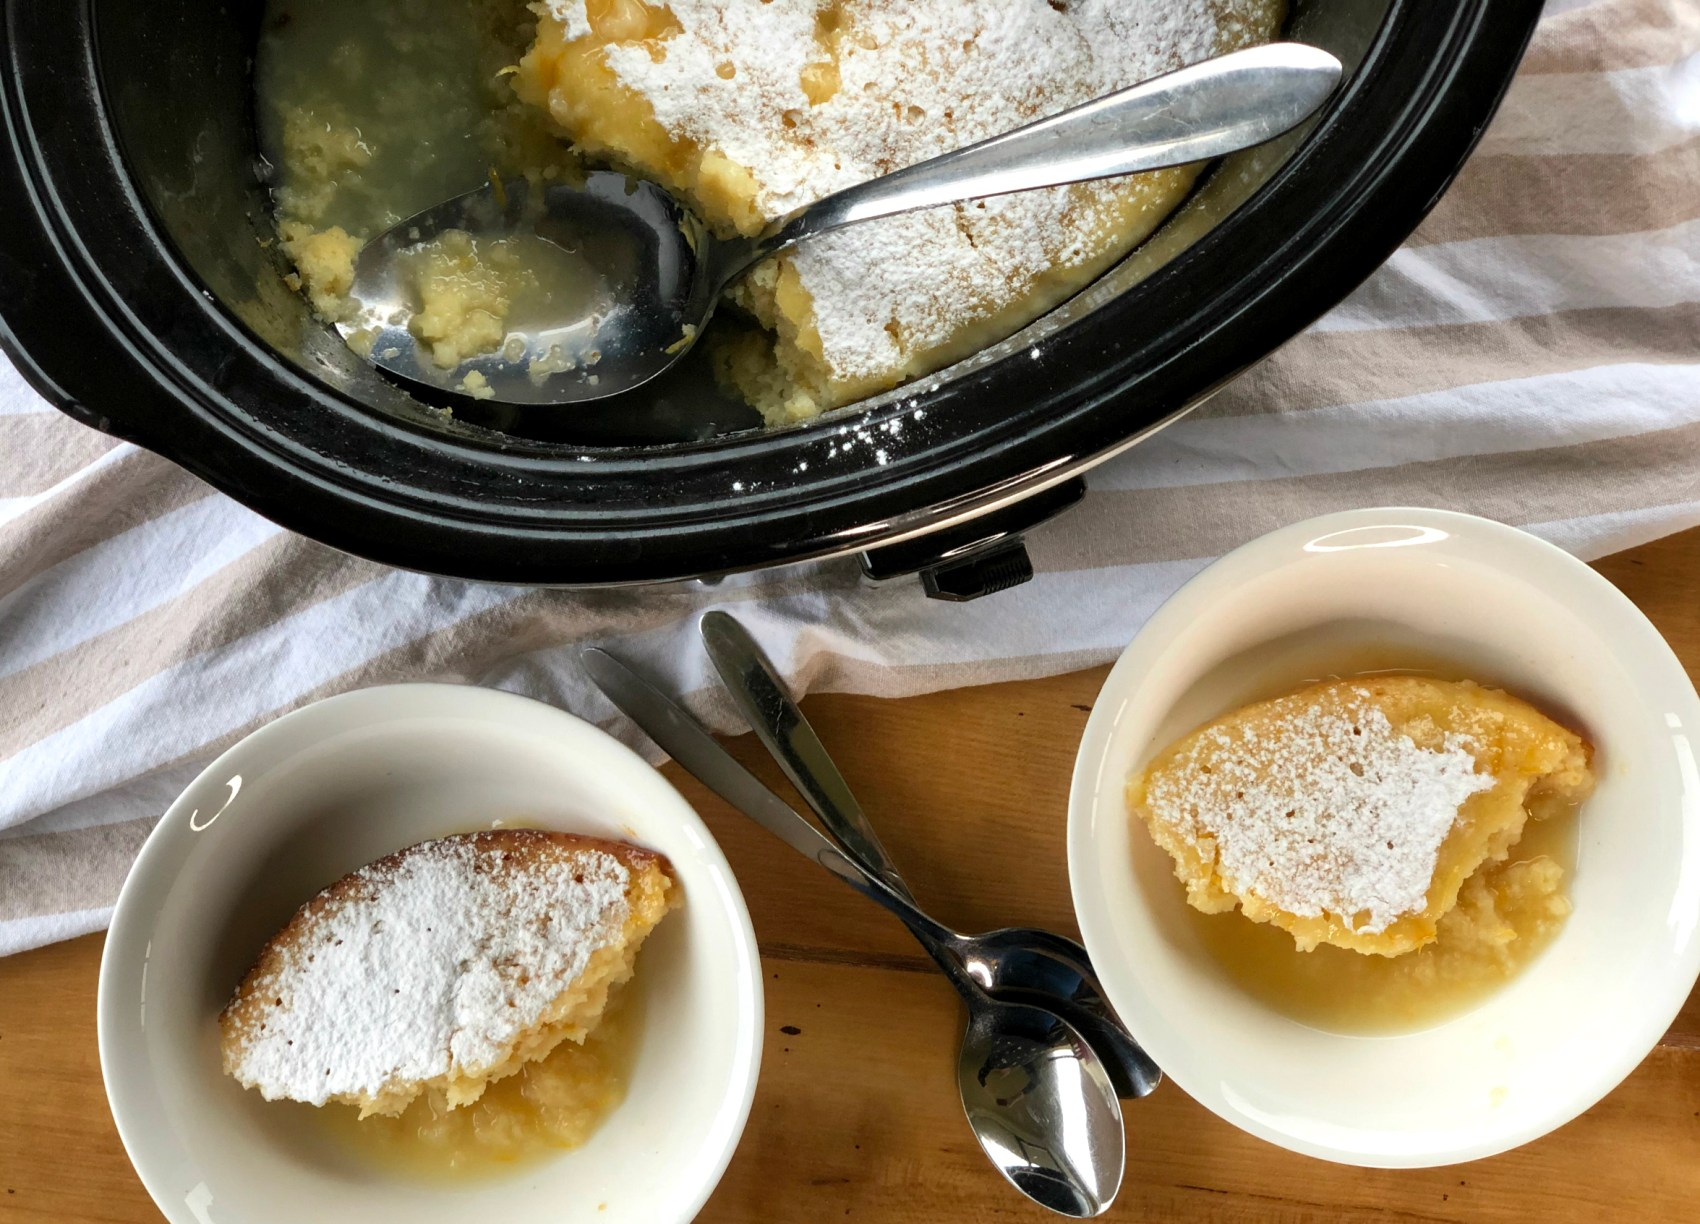 Two scoops of lemon dessert and the slow cooker